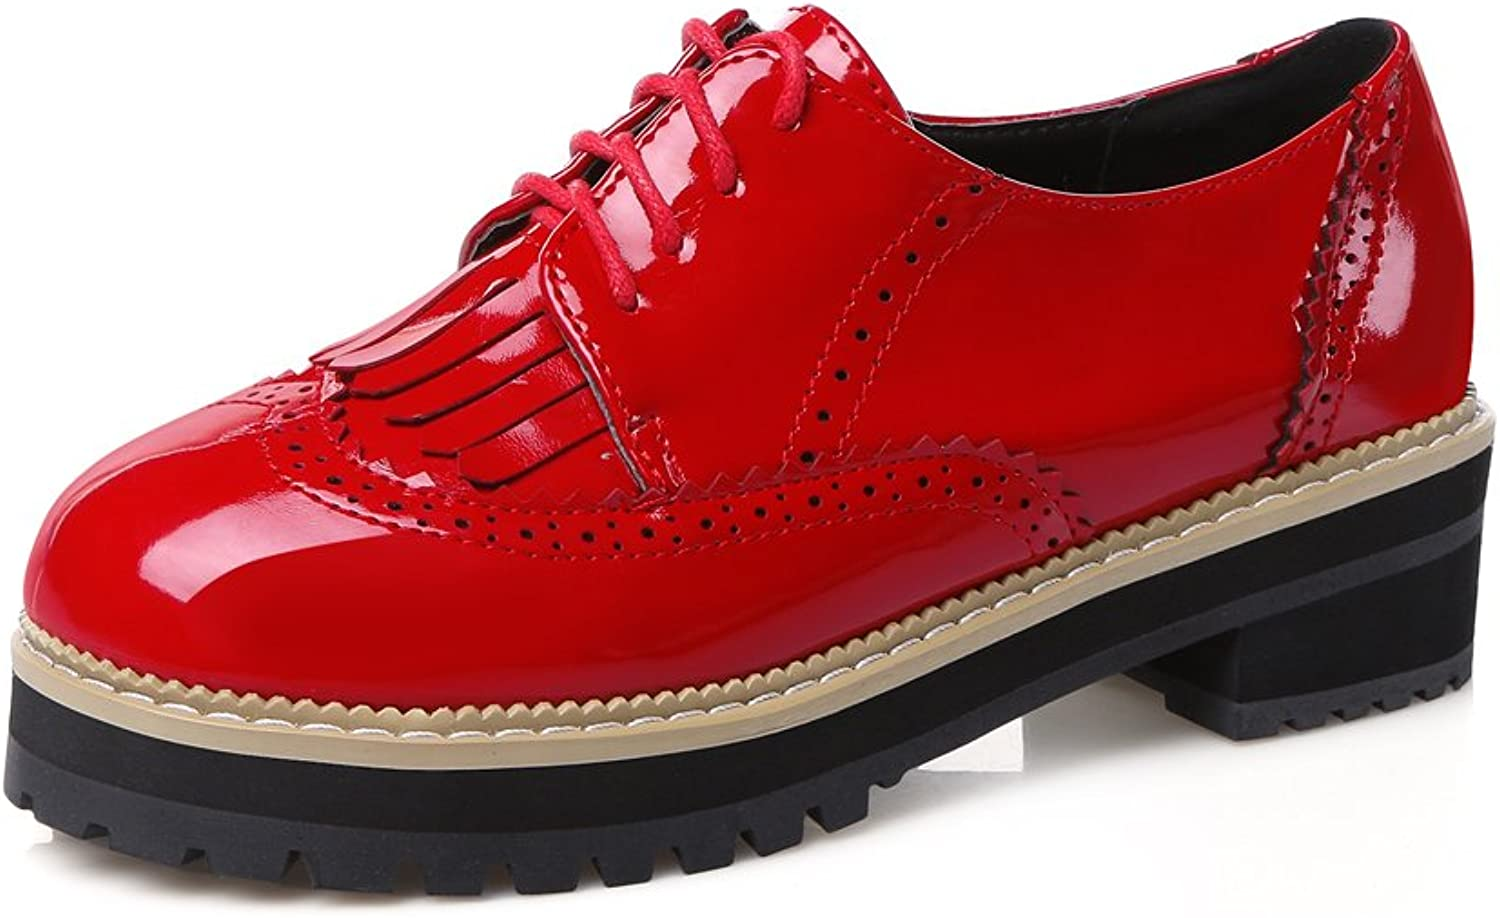 Lucksender Womens Lace Up Low Heels Carving Oxford shoes